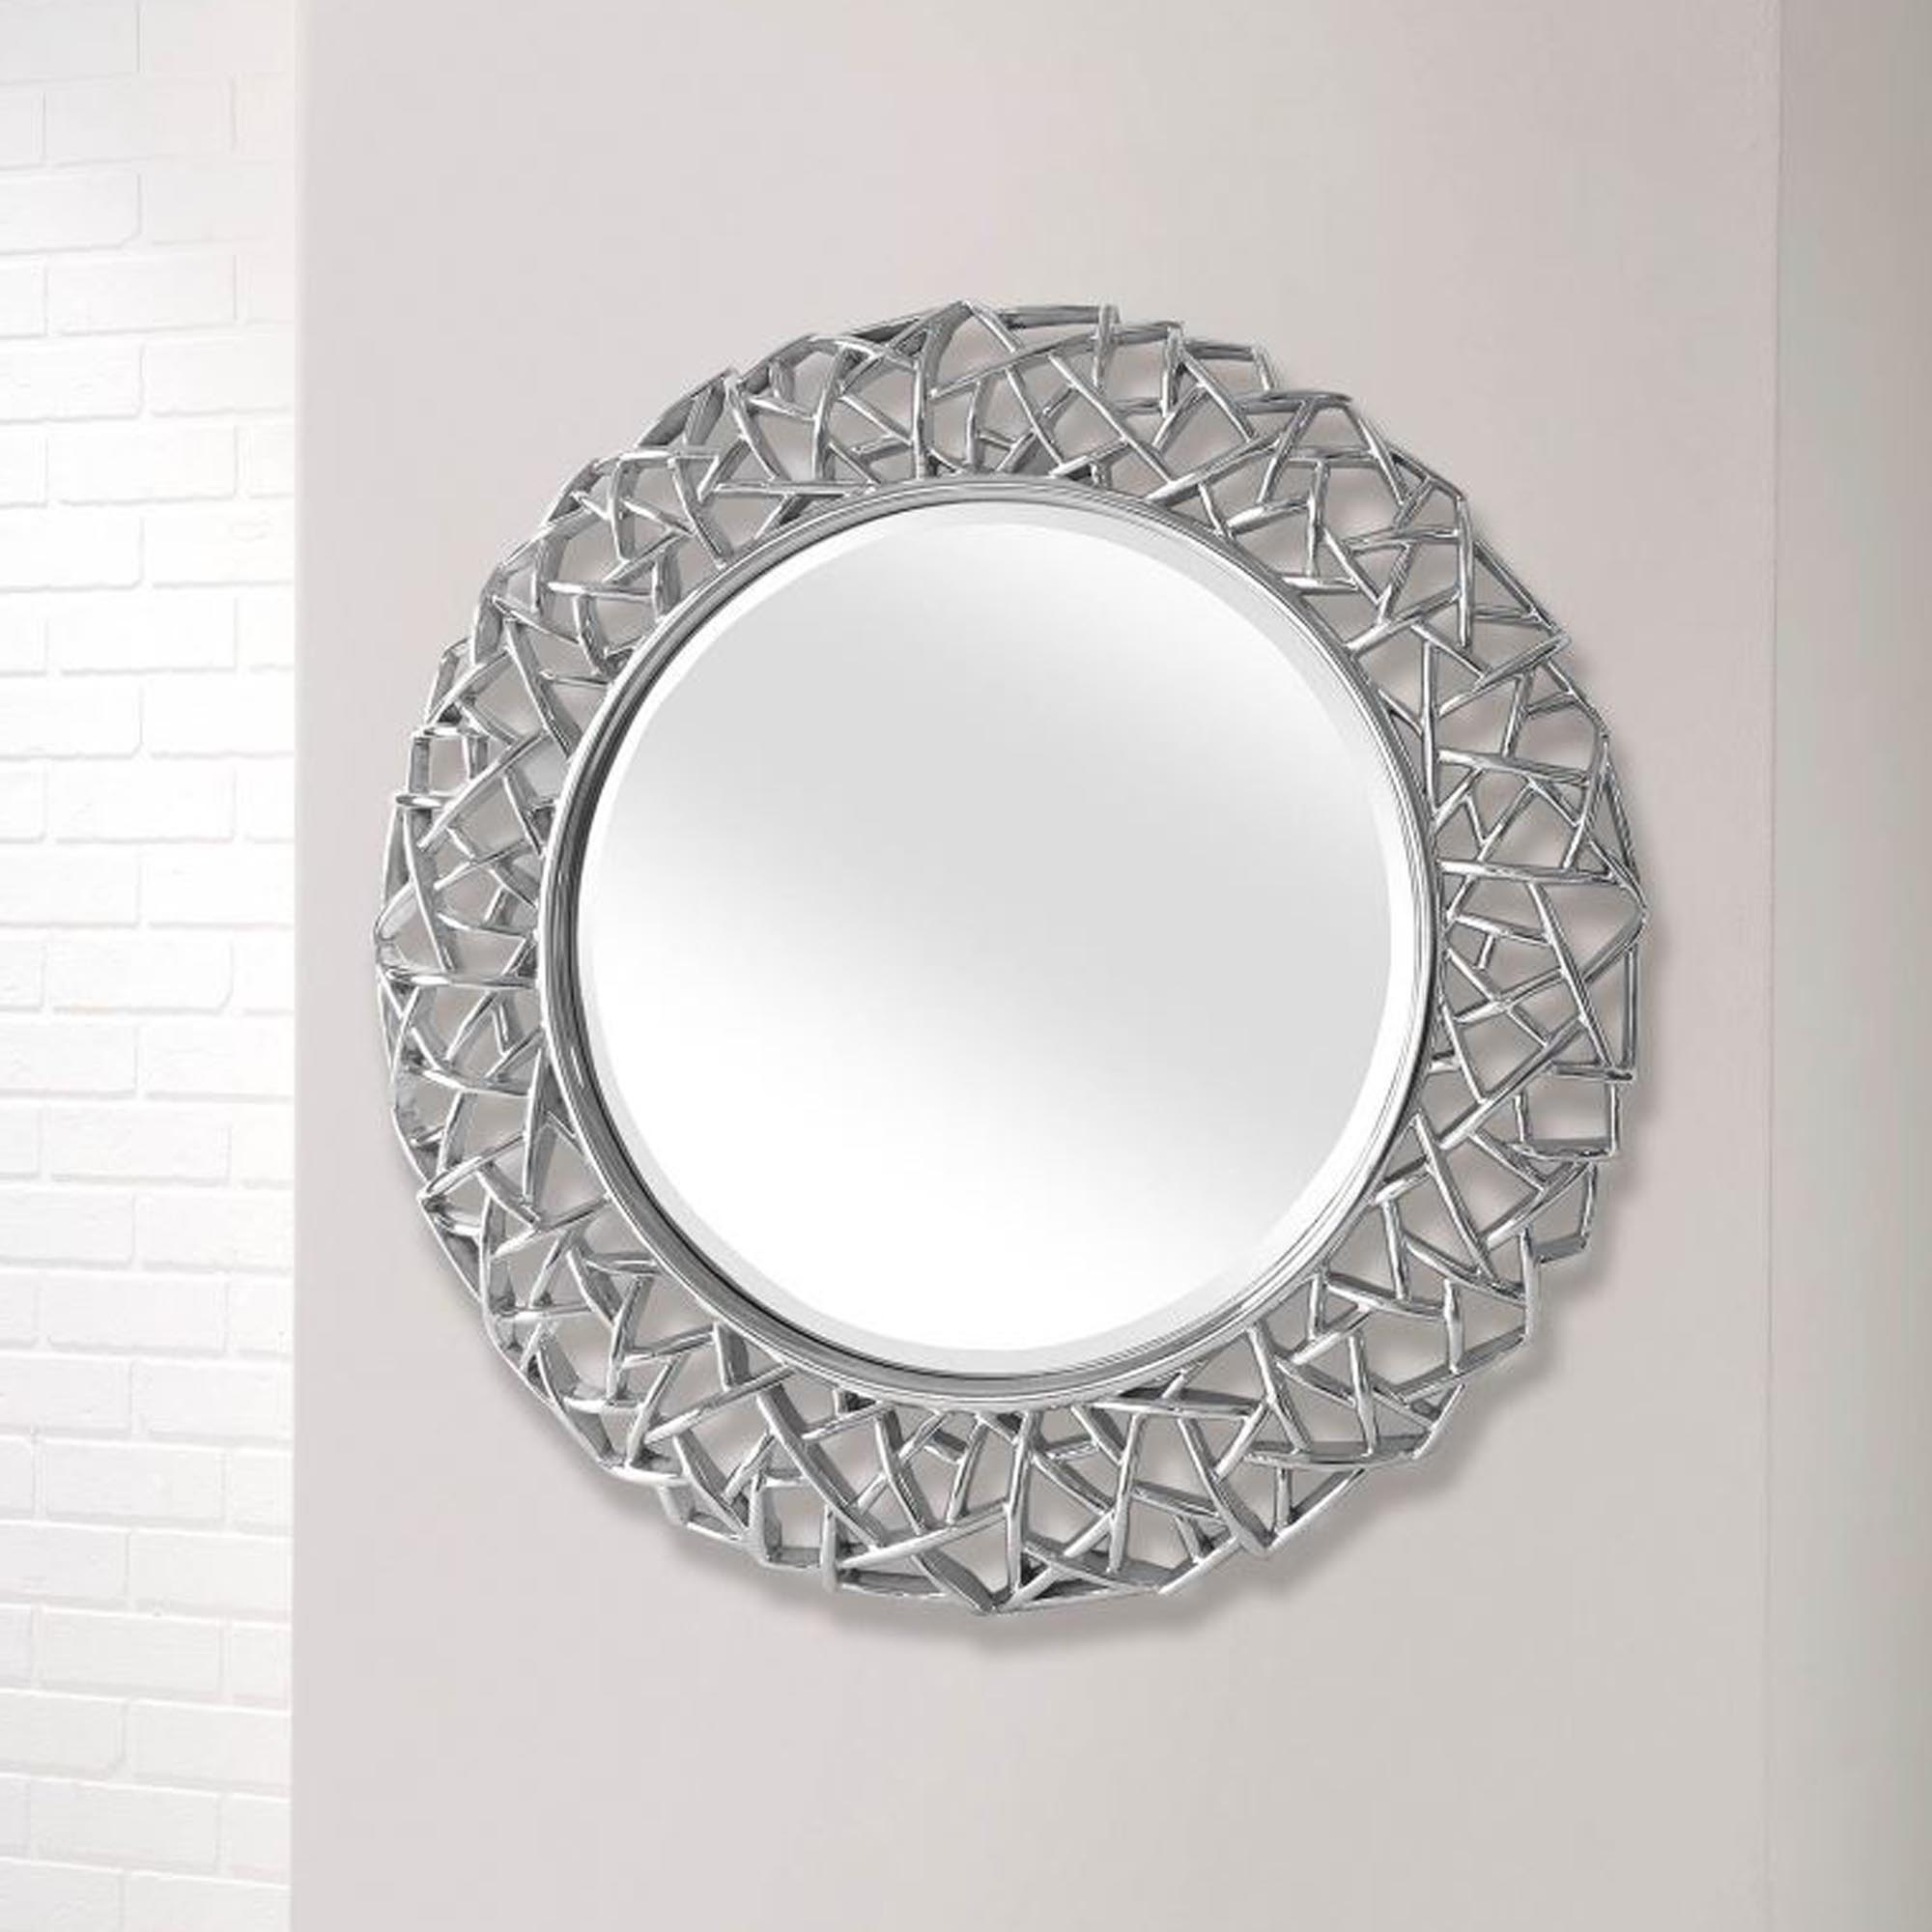 Recent Intricate Round Modern Wall Mirror For Modern Round Wall Mirrors (View 18 of 20)